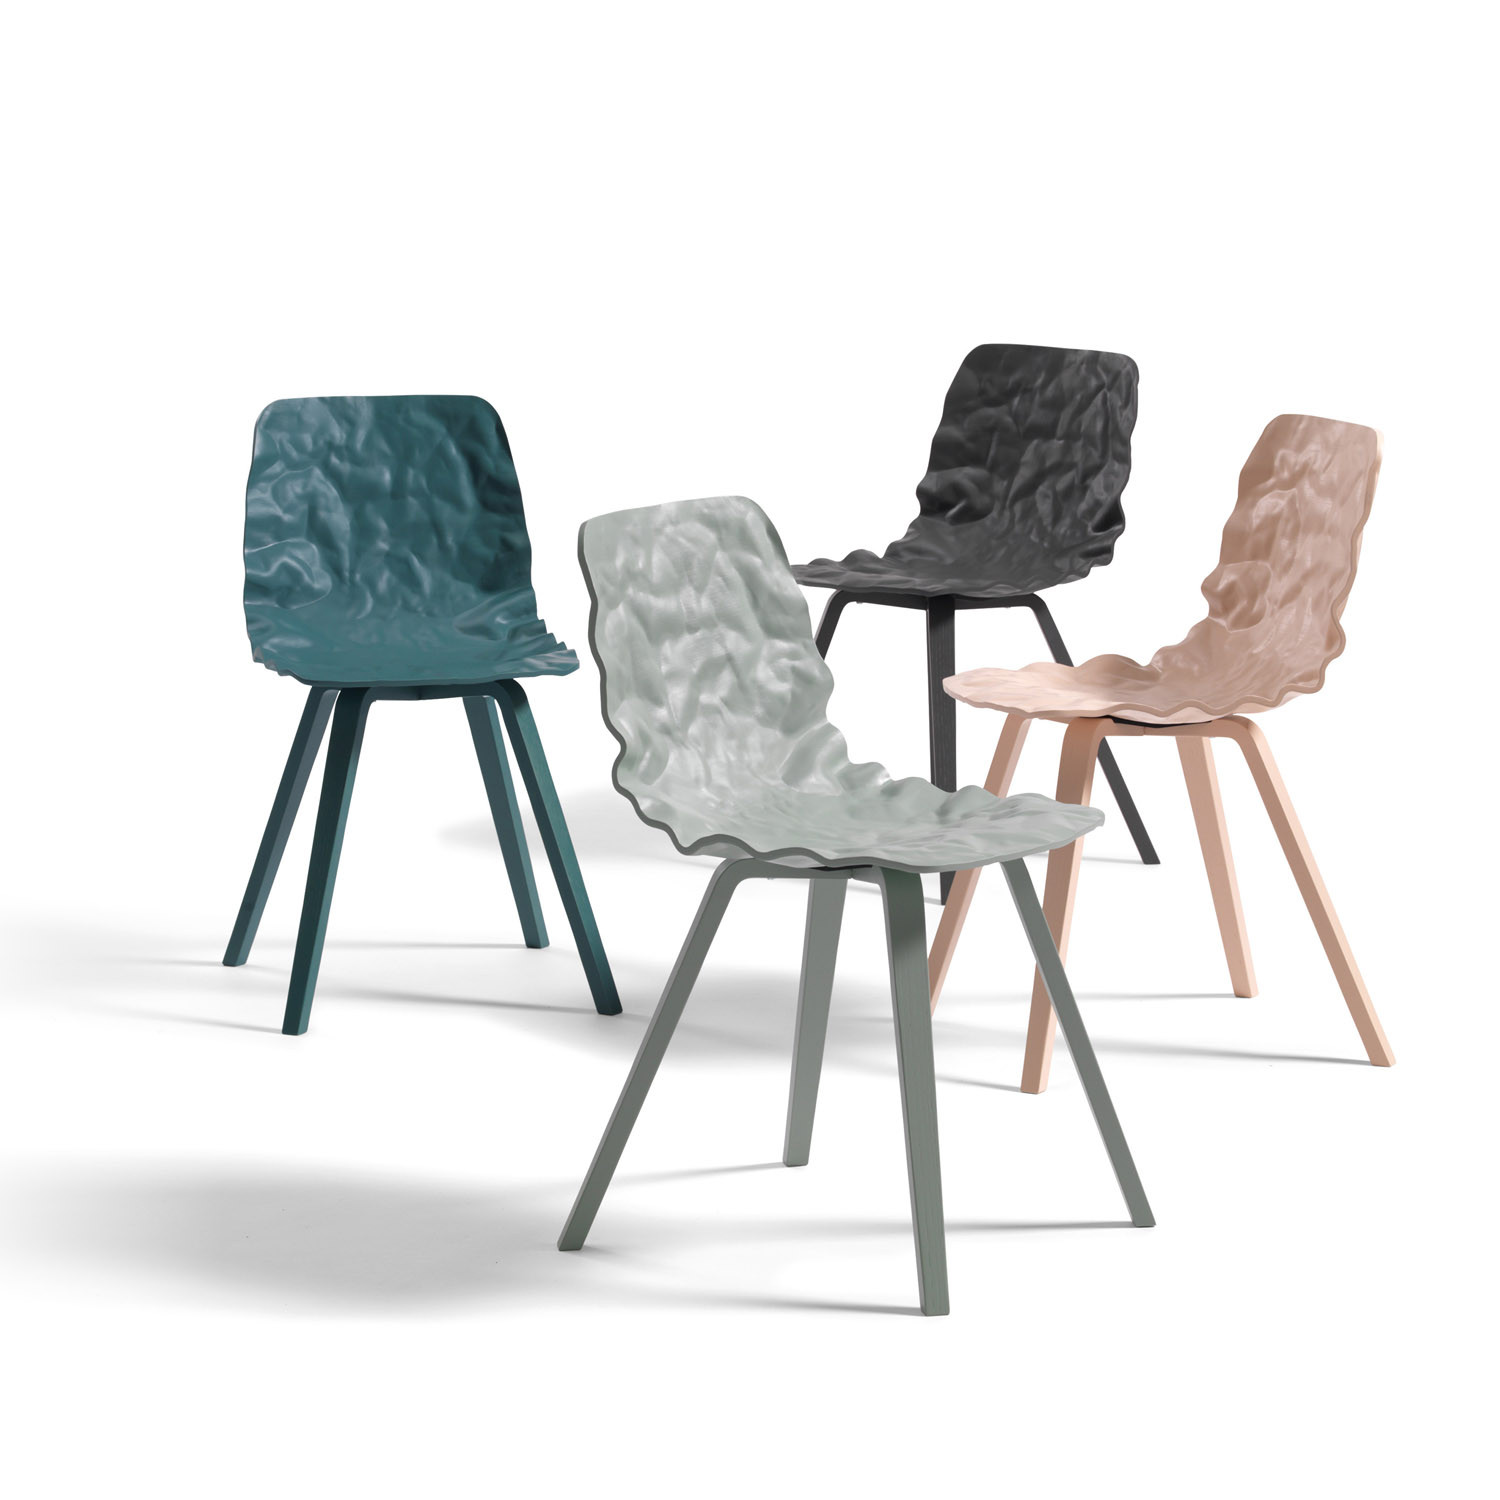 Dent Wooden Chairs B504